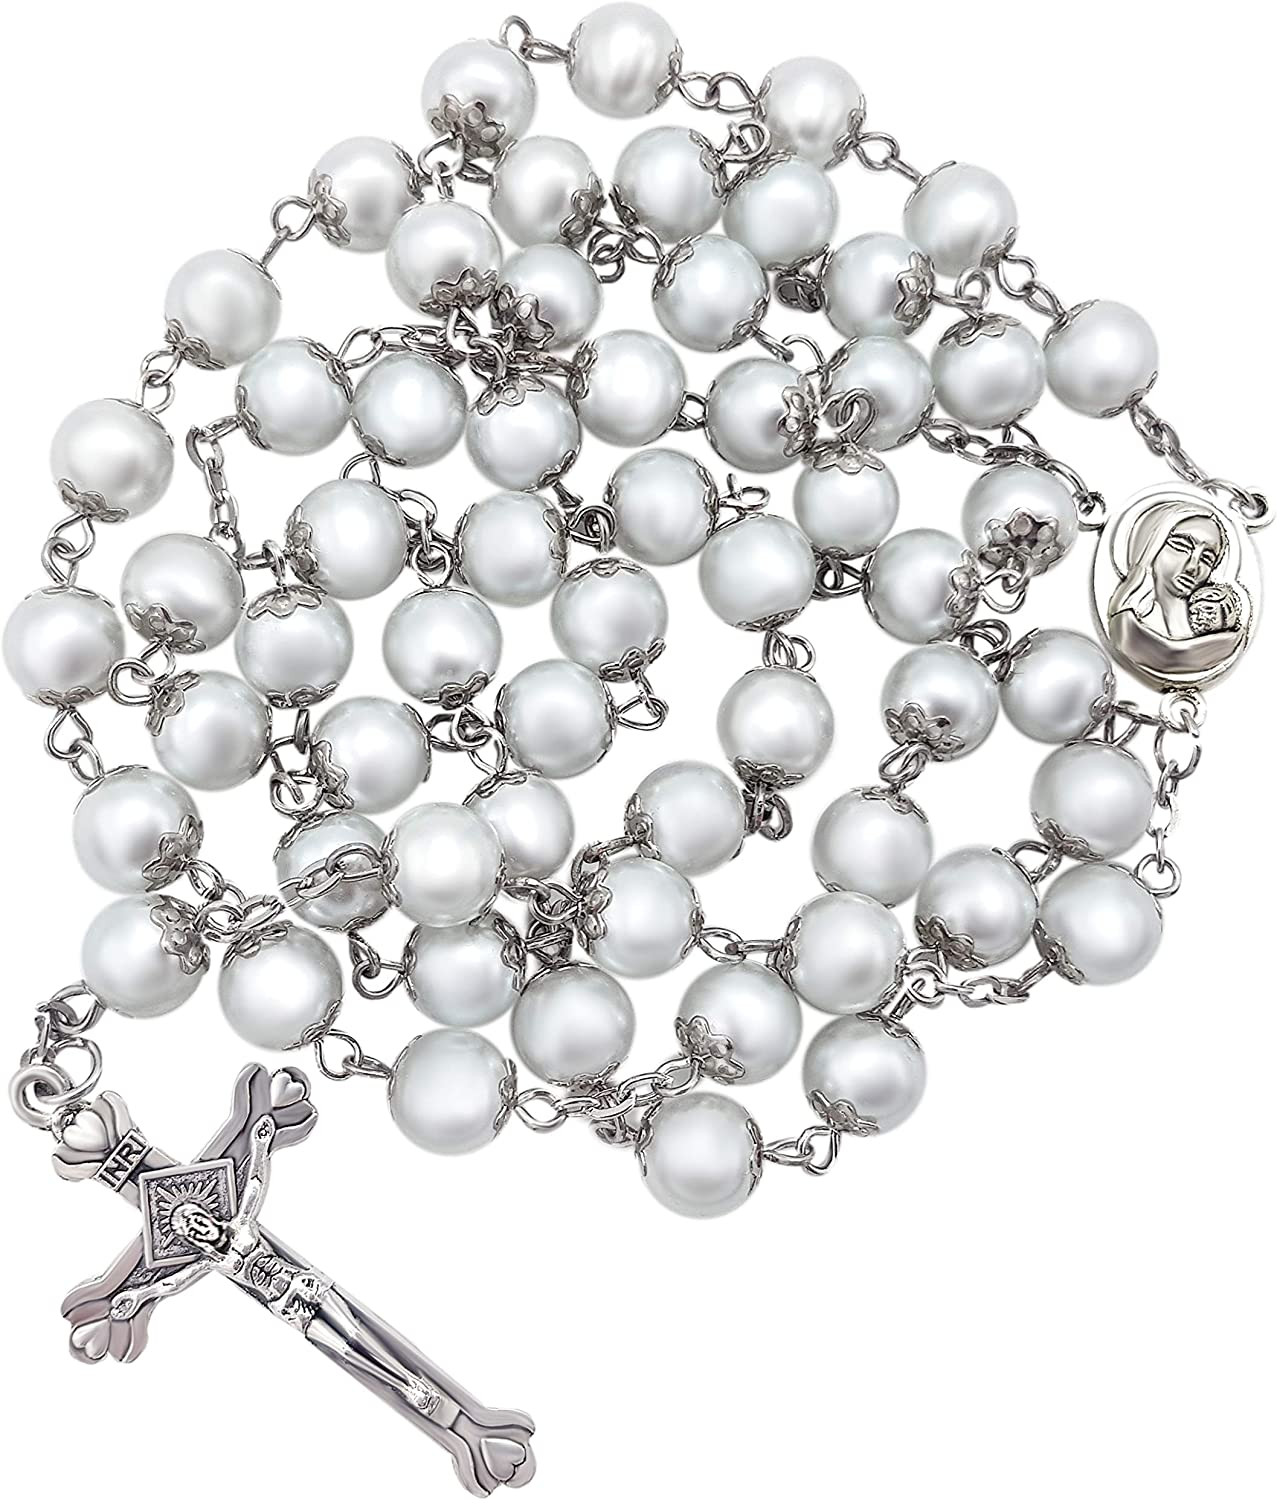 Nazareth Store White Pearl Rosary Beads Catholic Necklace Holy Soil Medal Cross Christian Holy Land Religious Gifts Rosaries for Women and Men